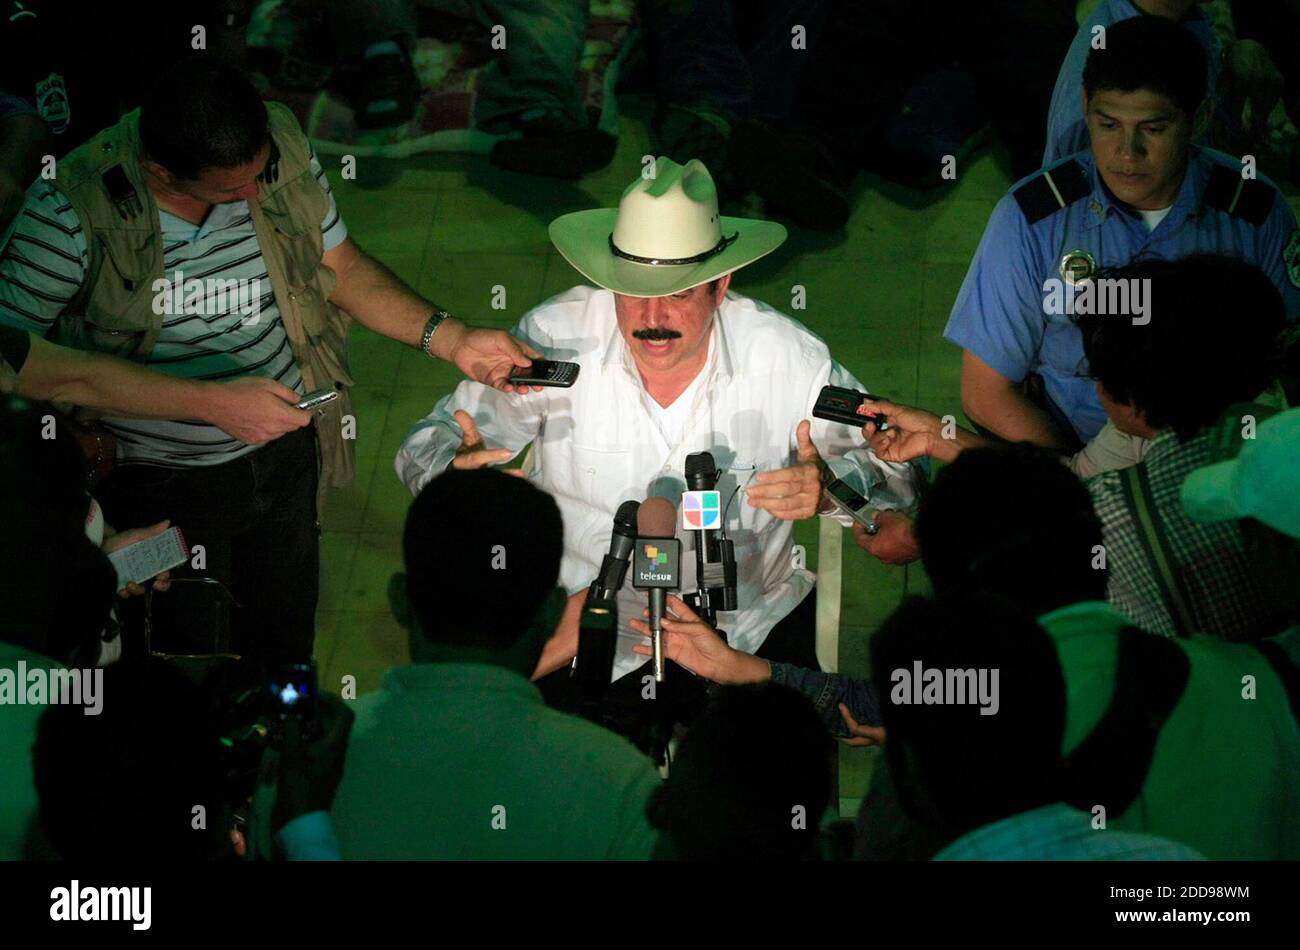 NO FILM, NO VIDEO, NO TV, NO DOCUMENTARY - Ousted President Manuel Zelaya talks to reporters during a visit to his supporters at El Polideportivo sports center in the town of Ocotal in Nicaragua, on July 27, 2009. Photo by Pedro Portal/El Nuevo Herald/MCT/ABACAPRESS.COM Stock Photo